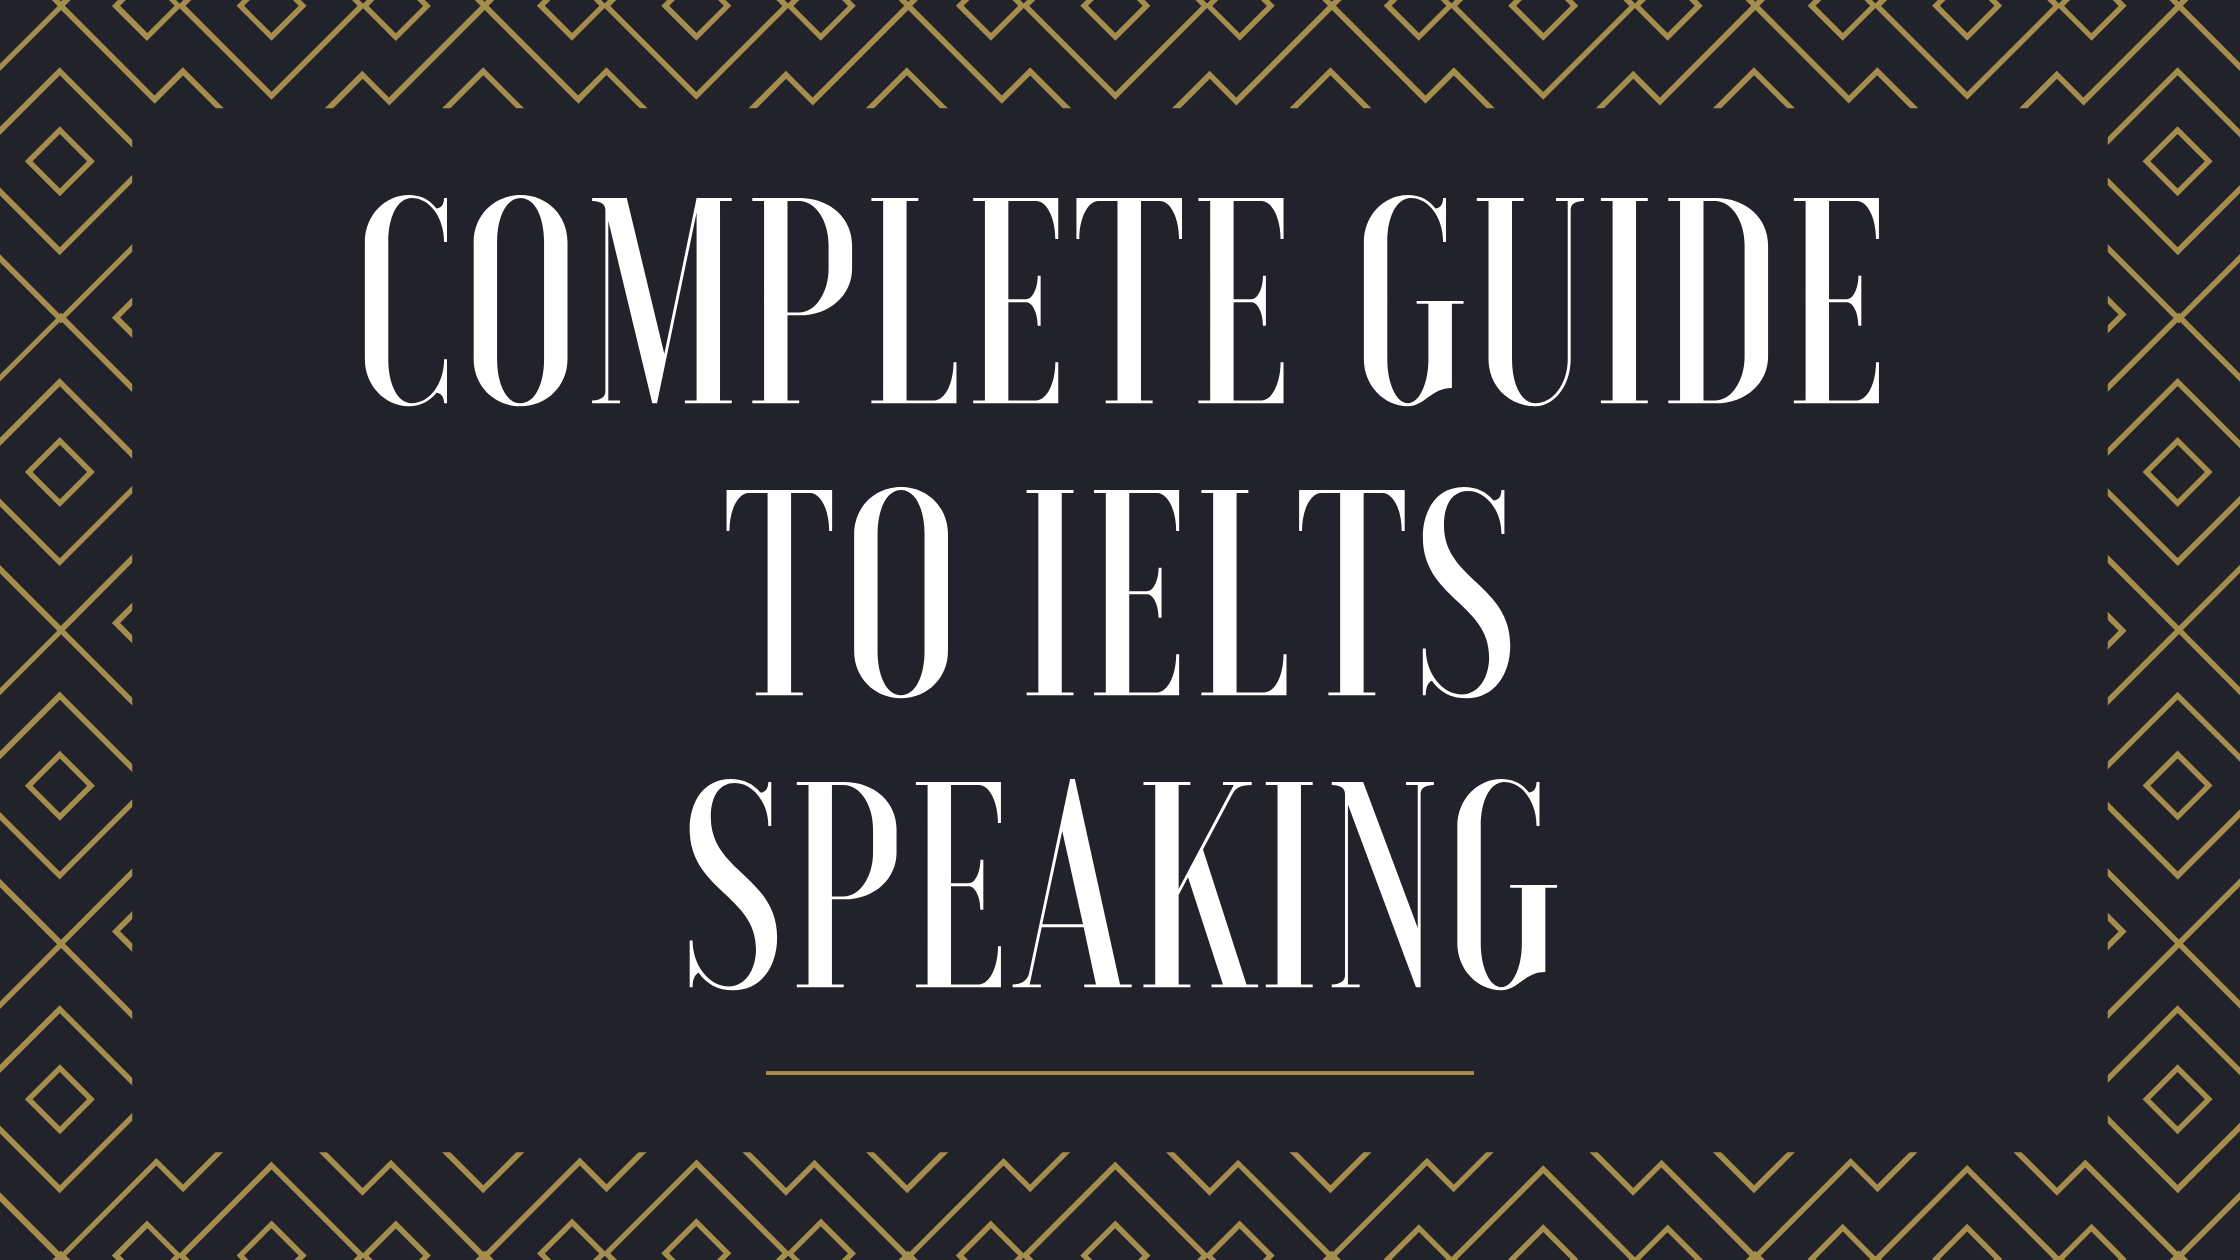 Complete Guide to IELTS Speaking